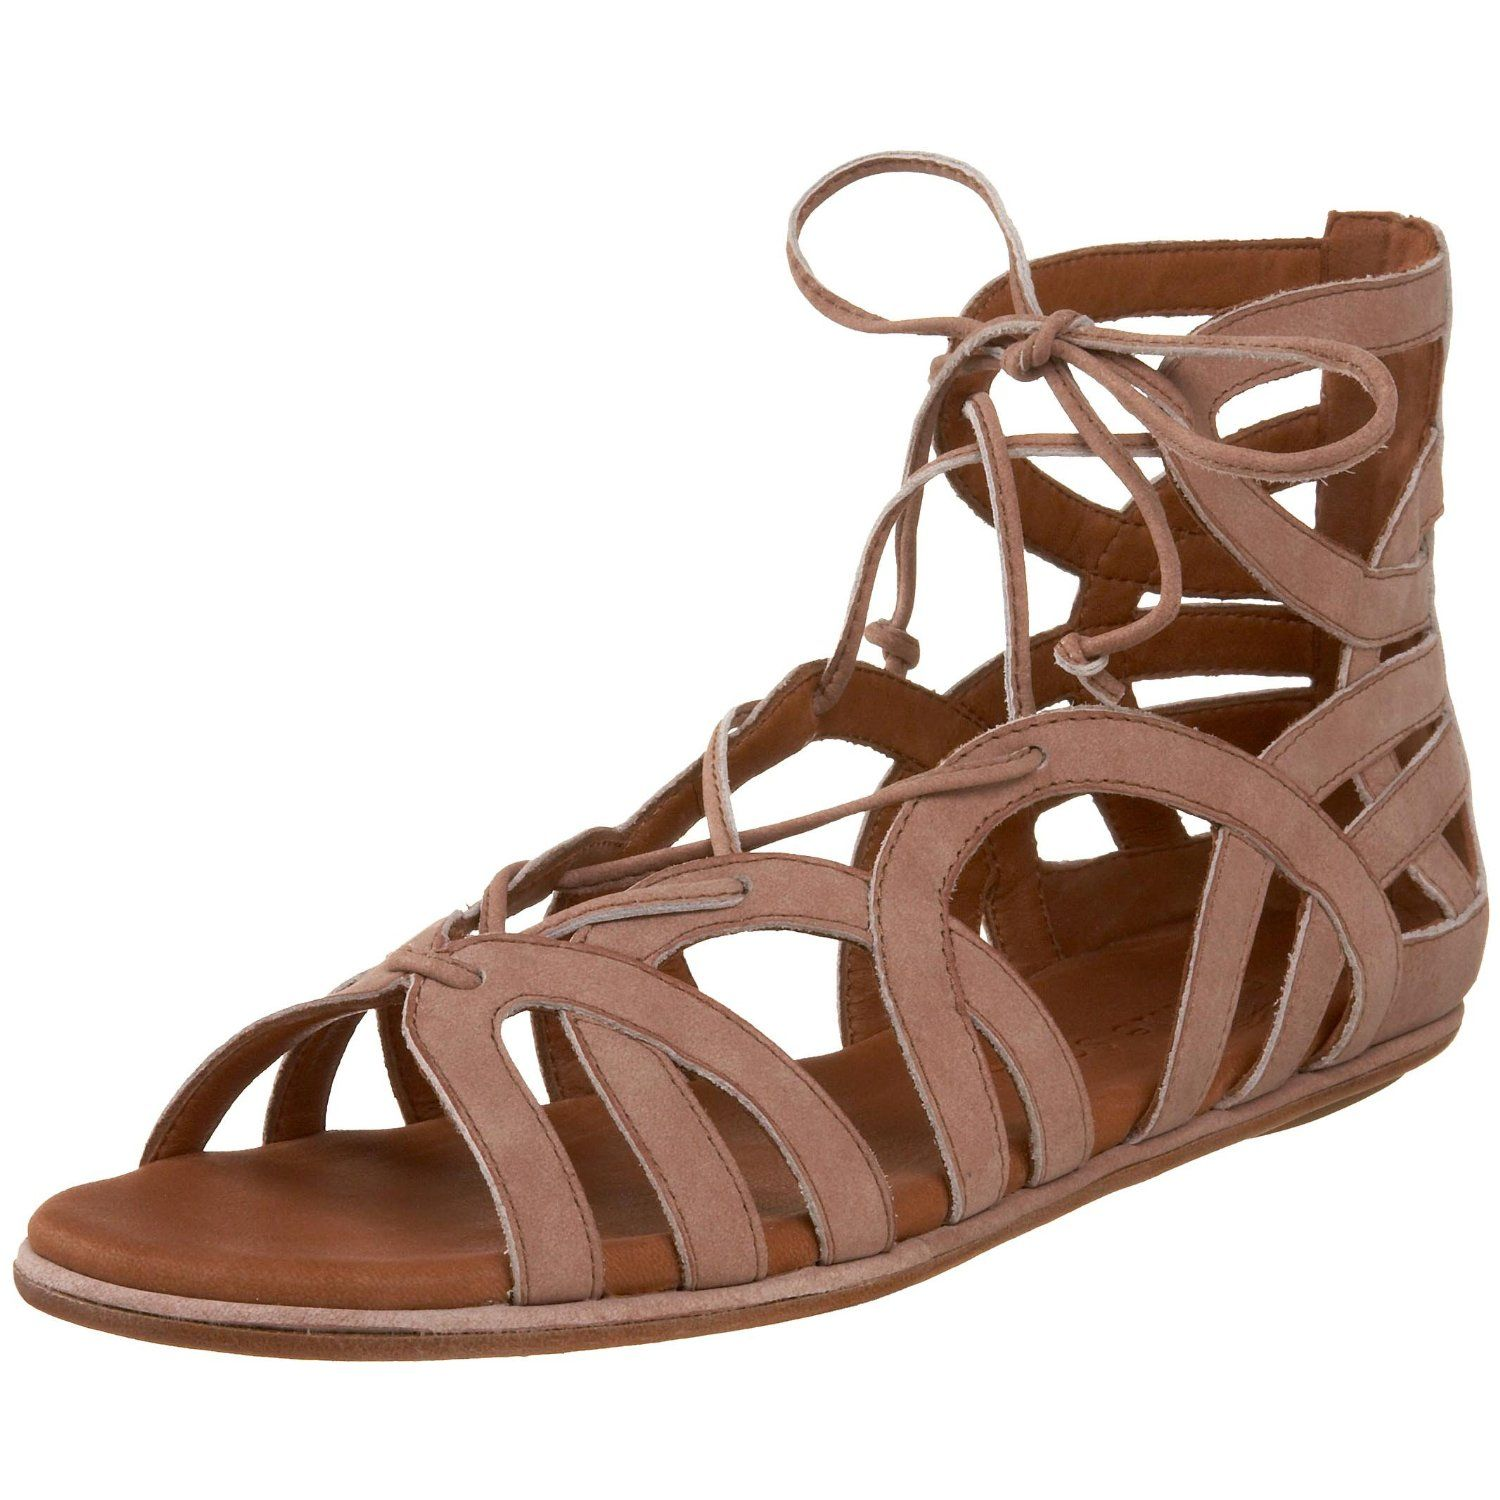 gladiator sandals. | fae garb for renfest themes | pinterest